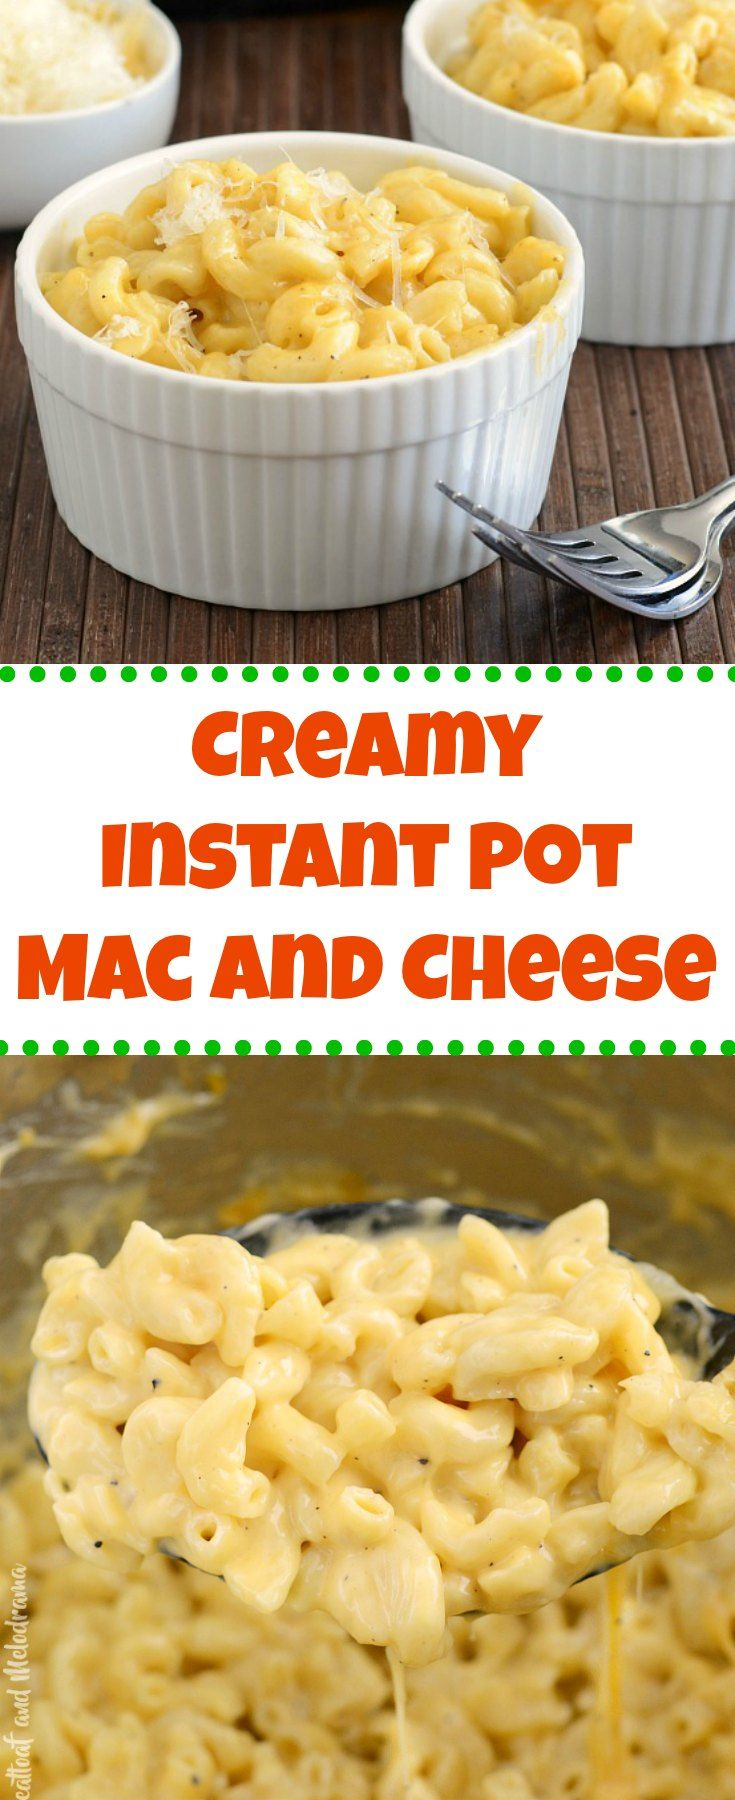 Creamy Instant Pot Mac and Cheese - Meatloaf and Melodrama